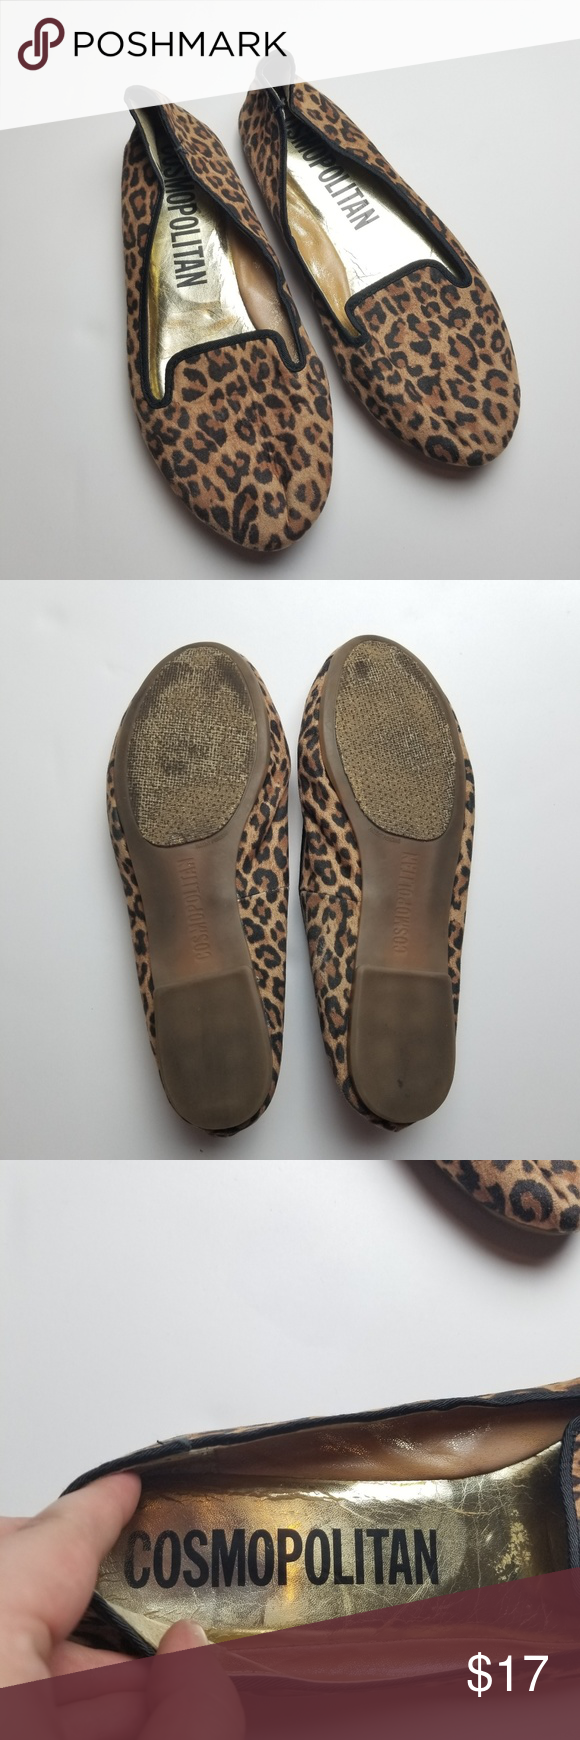 2526ae12de46d Cosmopolitan Cheetah Animal Print Flats Loafers 10 Adorably chic leopard  spots printed fabric loafer   flat